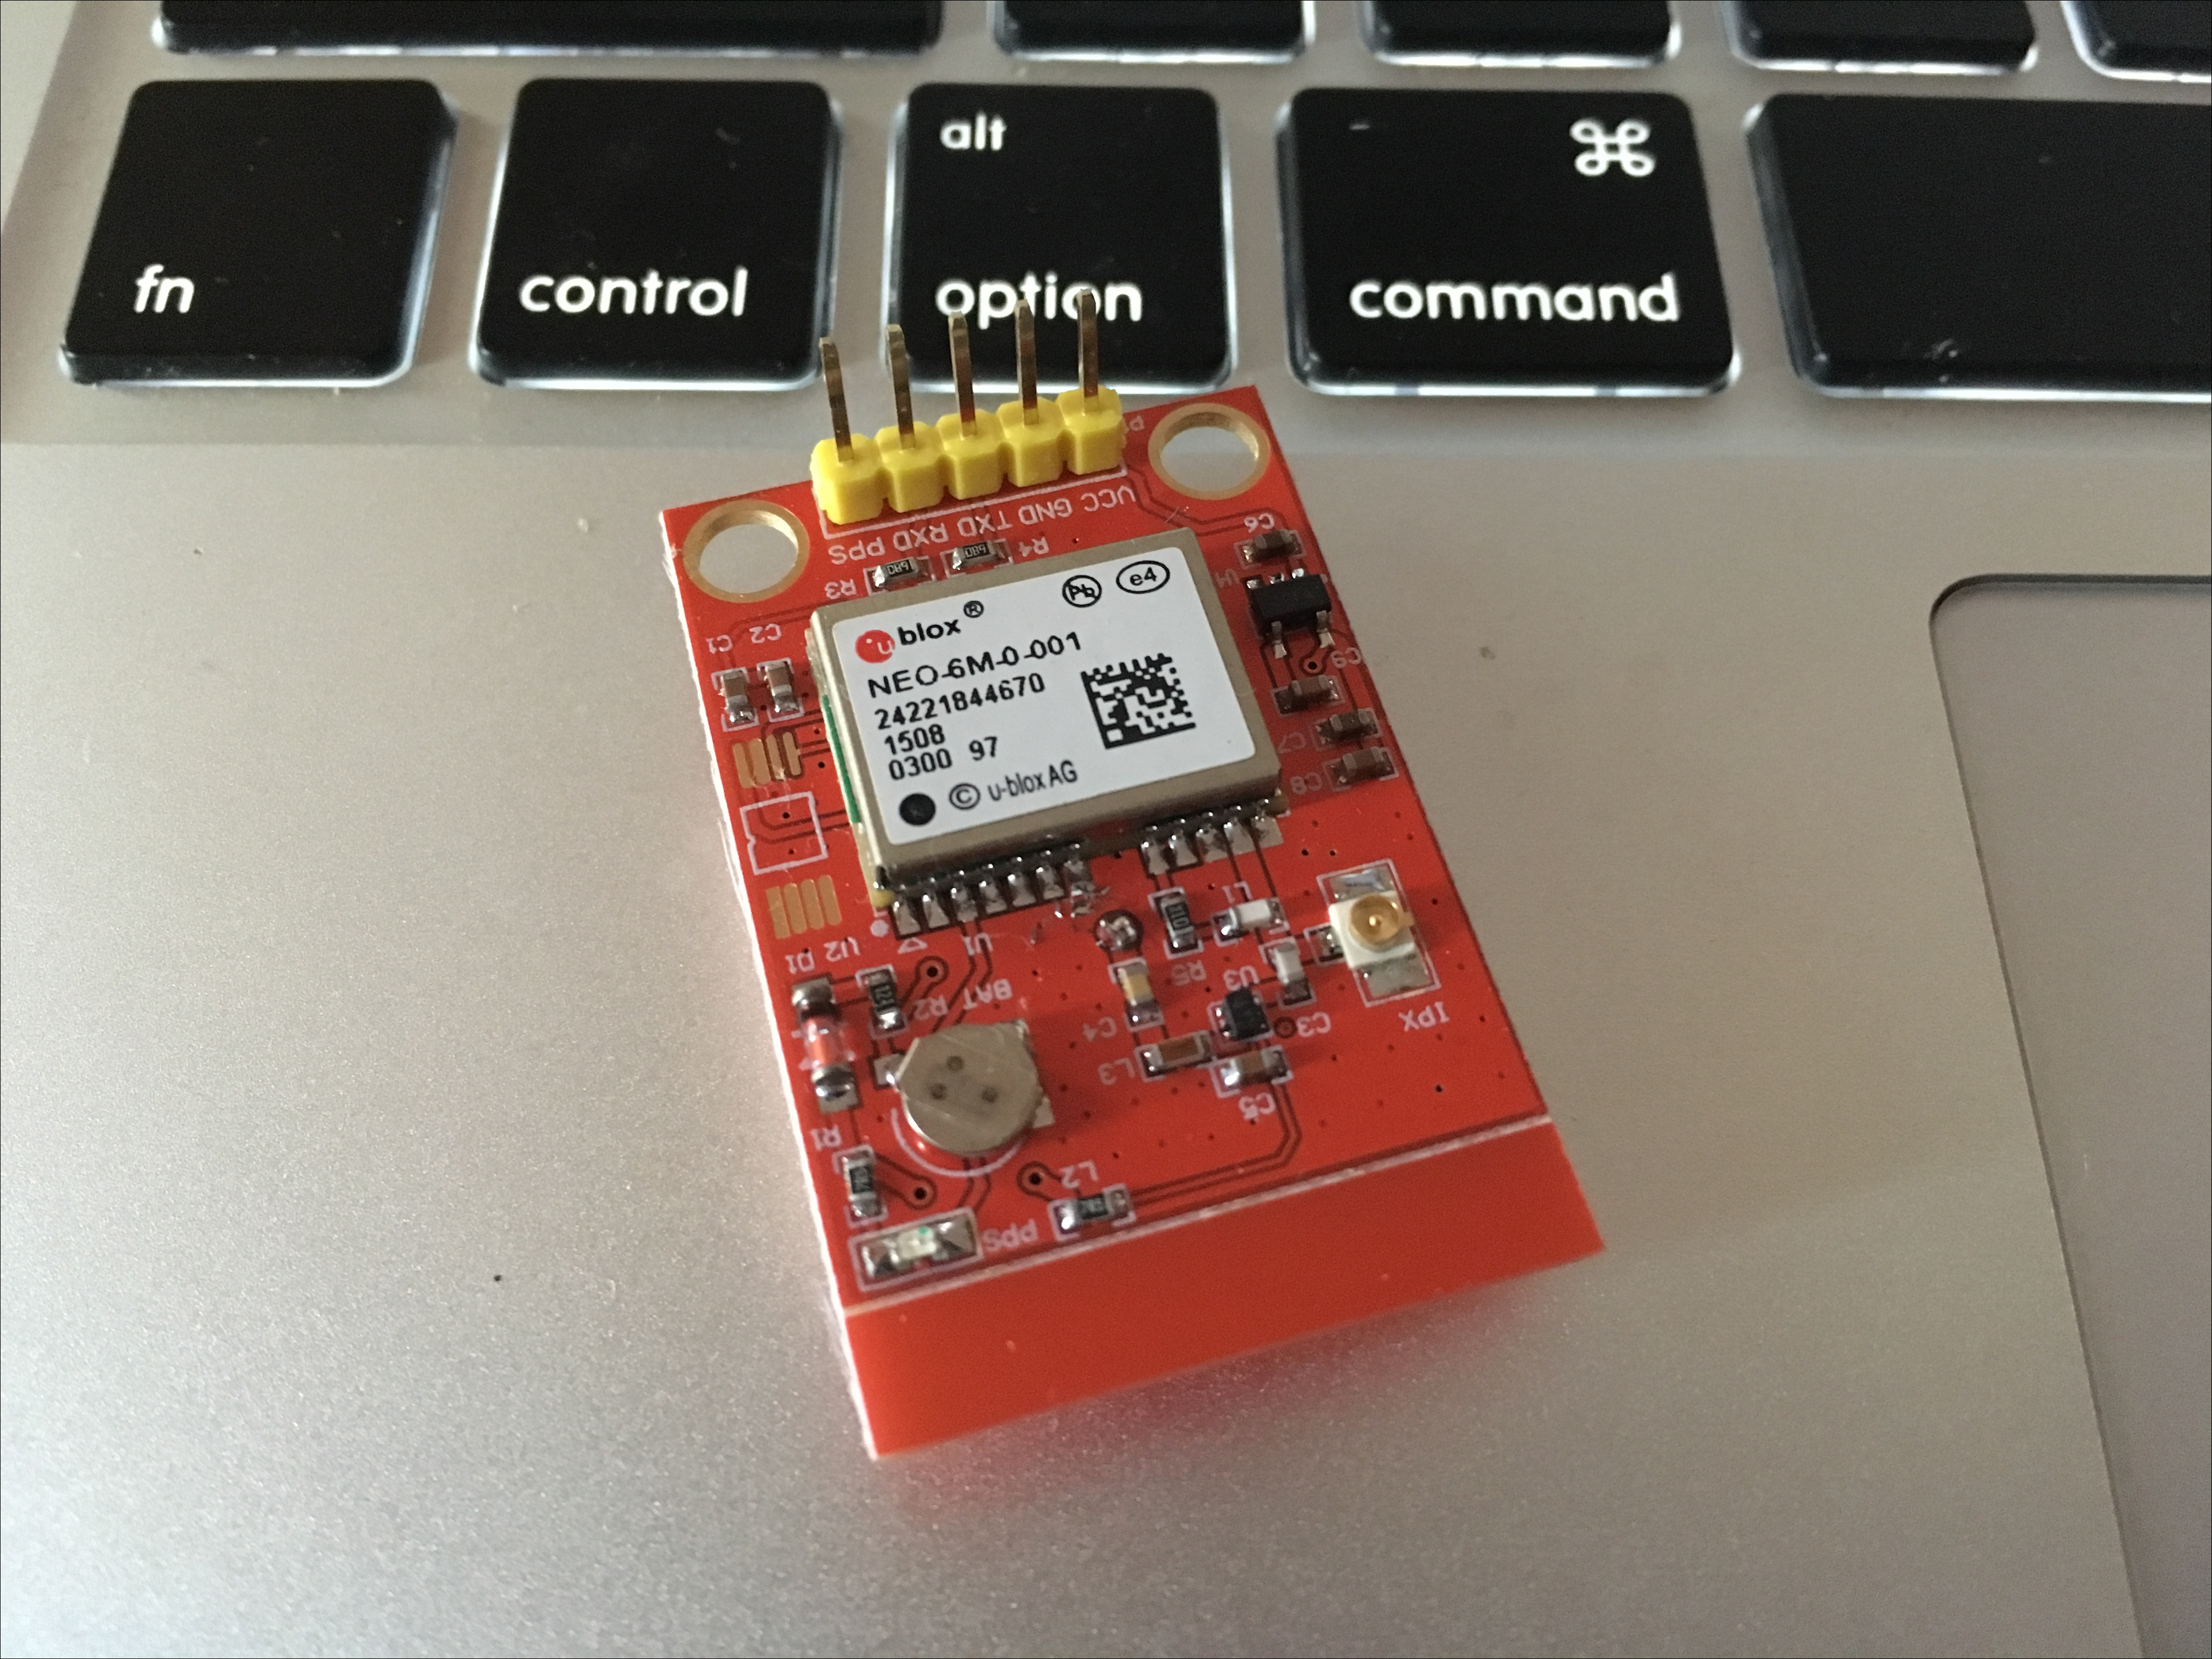 Working with a GPS module for navigation - Smart Internet of